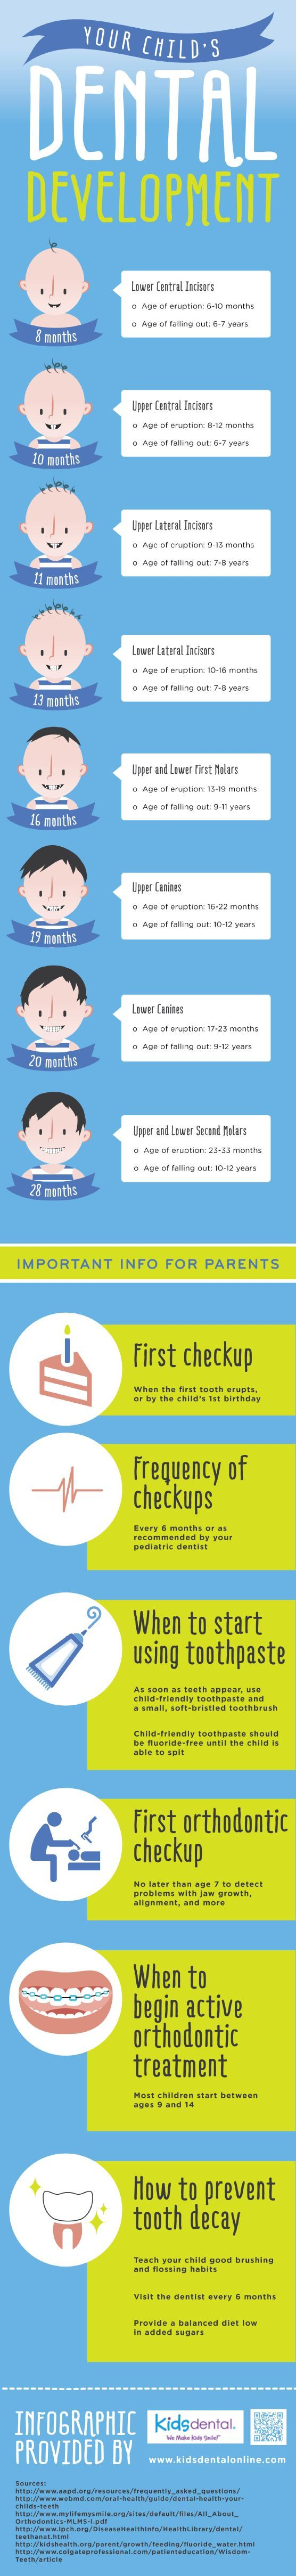 Educate patients on staying up-to-date on their child's dental development.